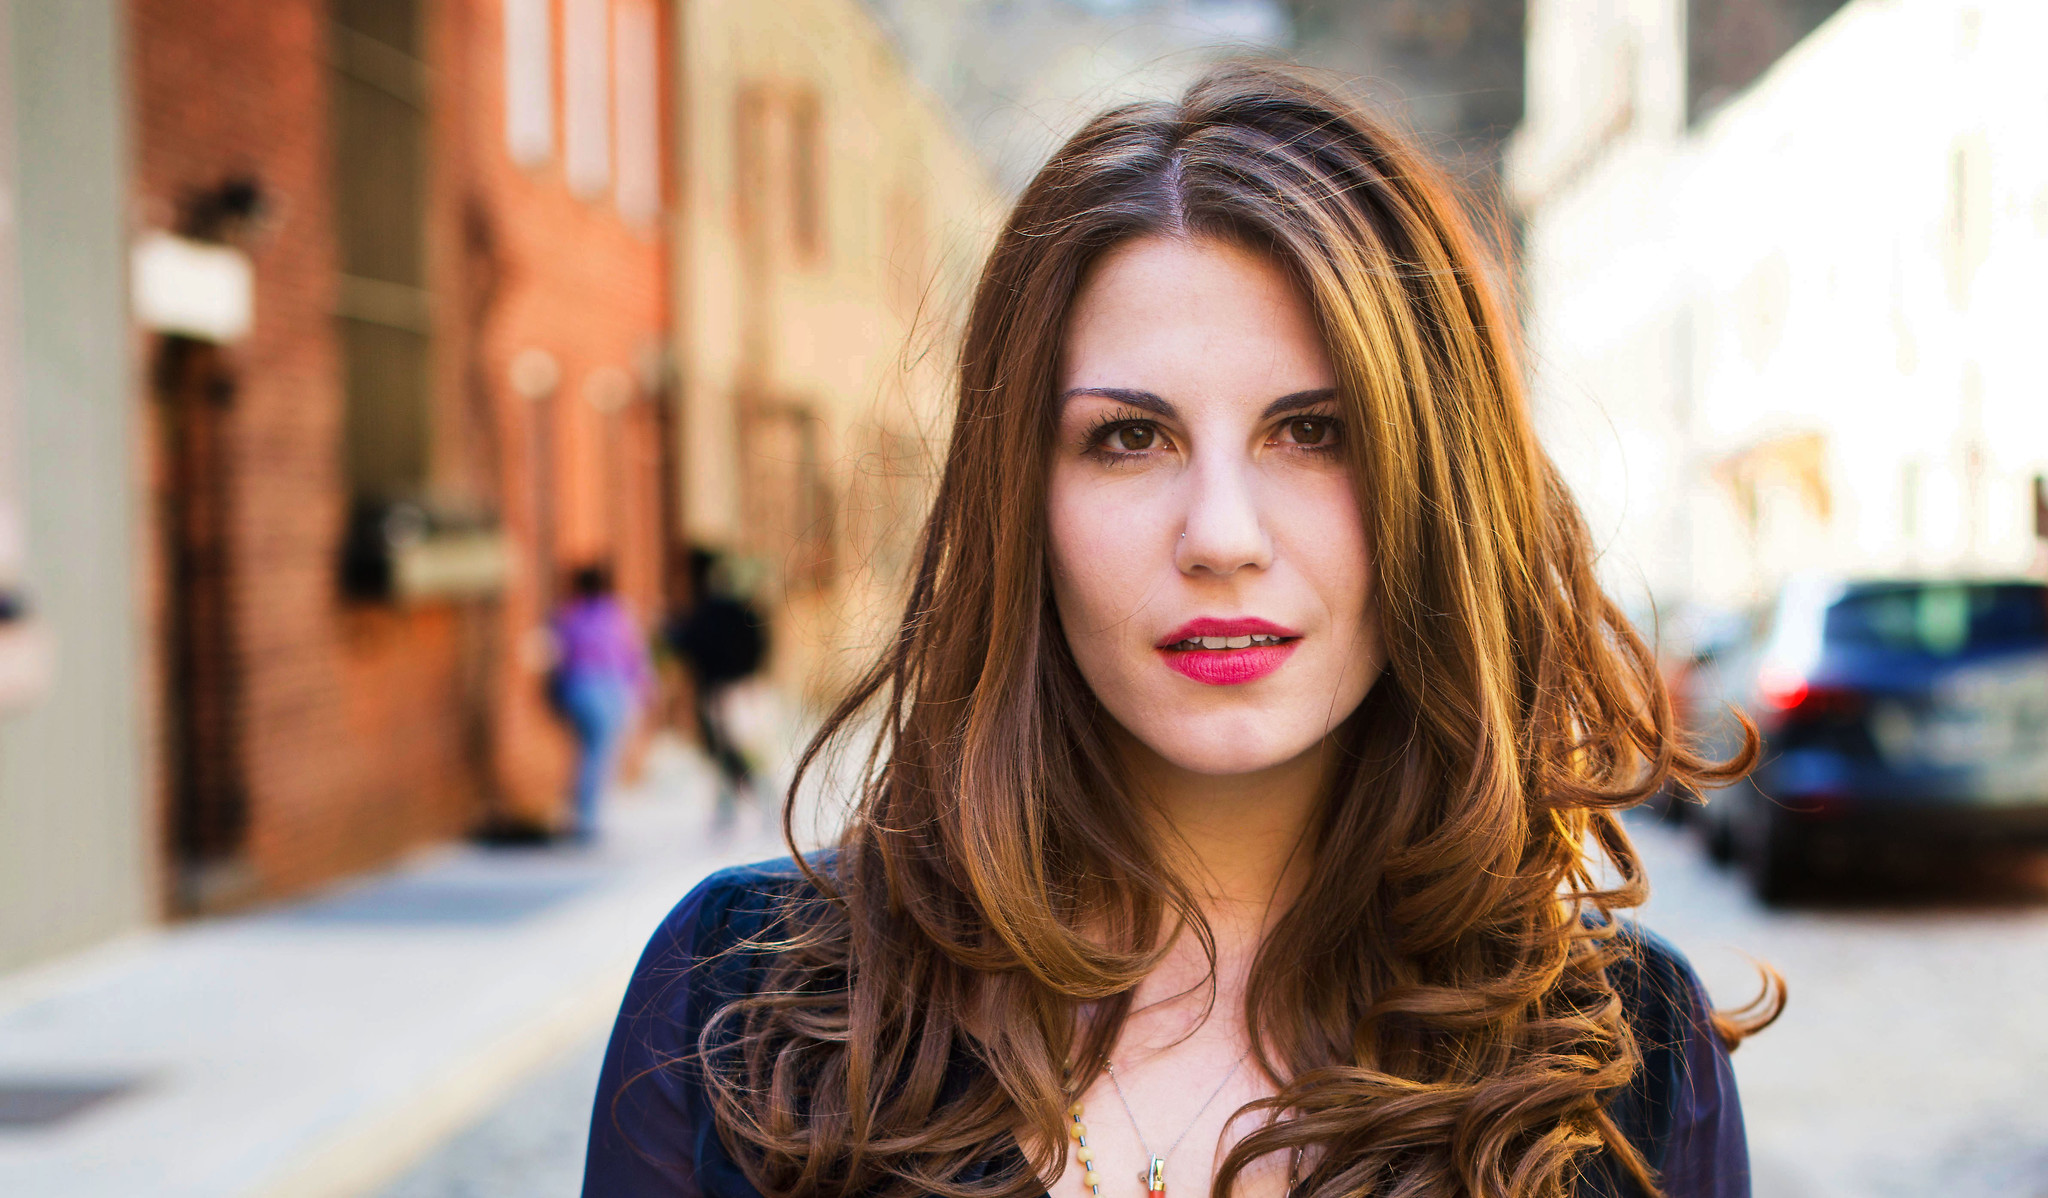 Teen Vogue Writer and Political Activist Lauren Duca to Deliver Commencement Speech at Bard College at Simon's Rock